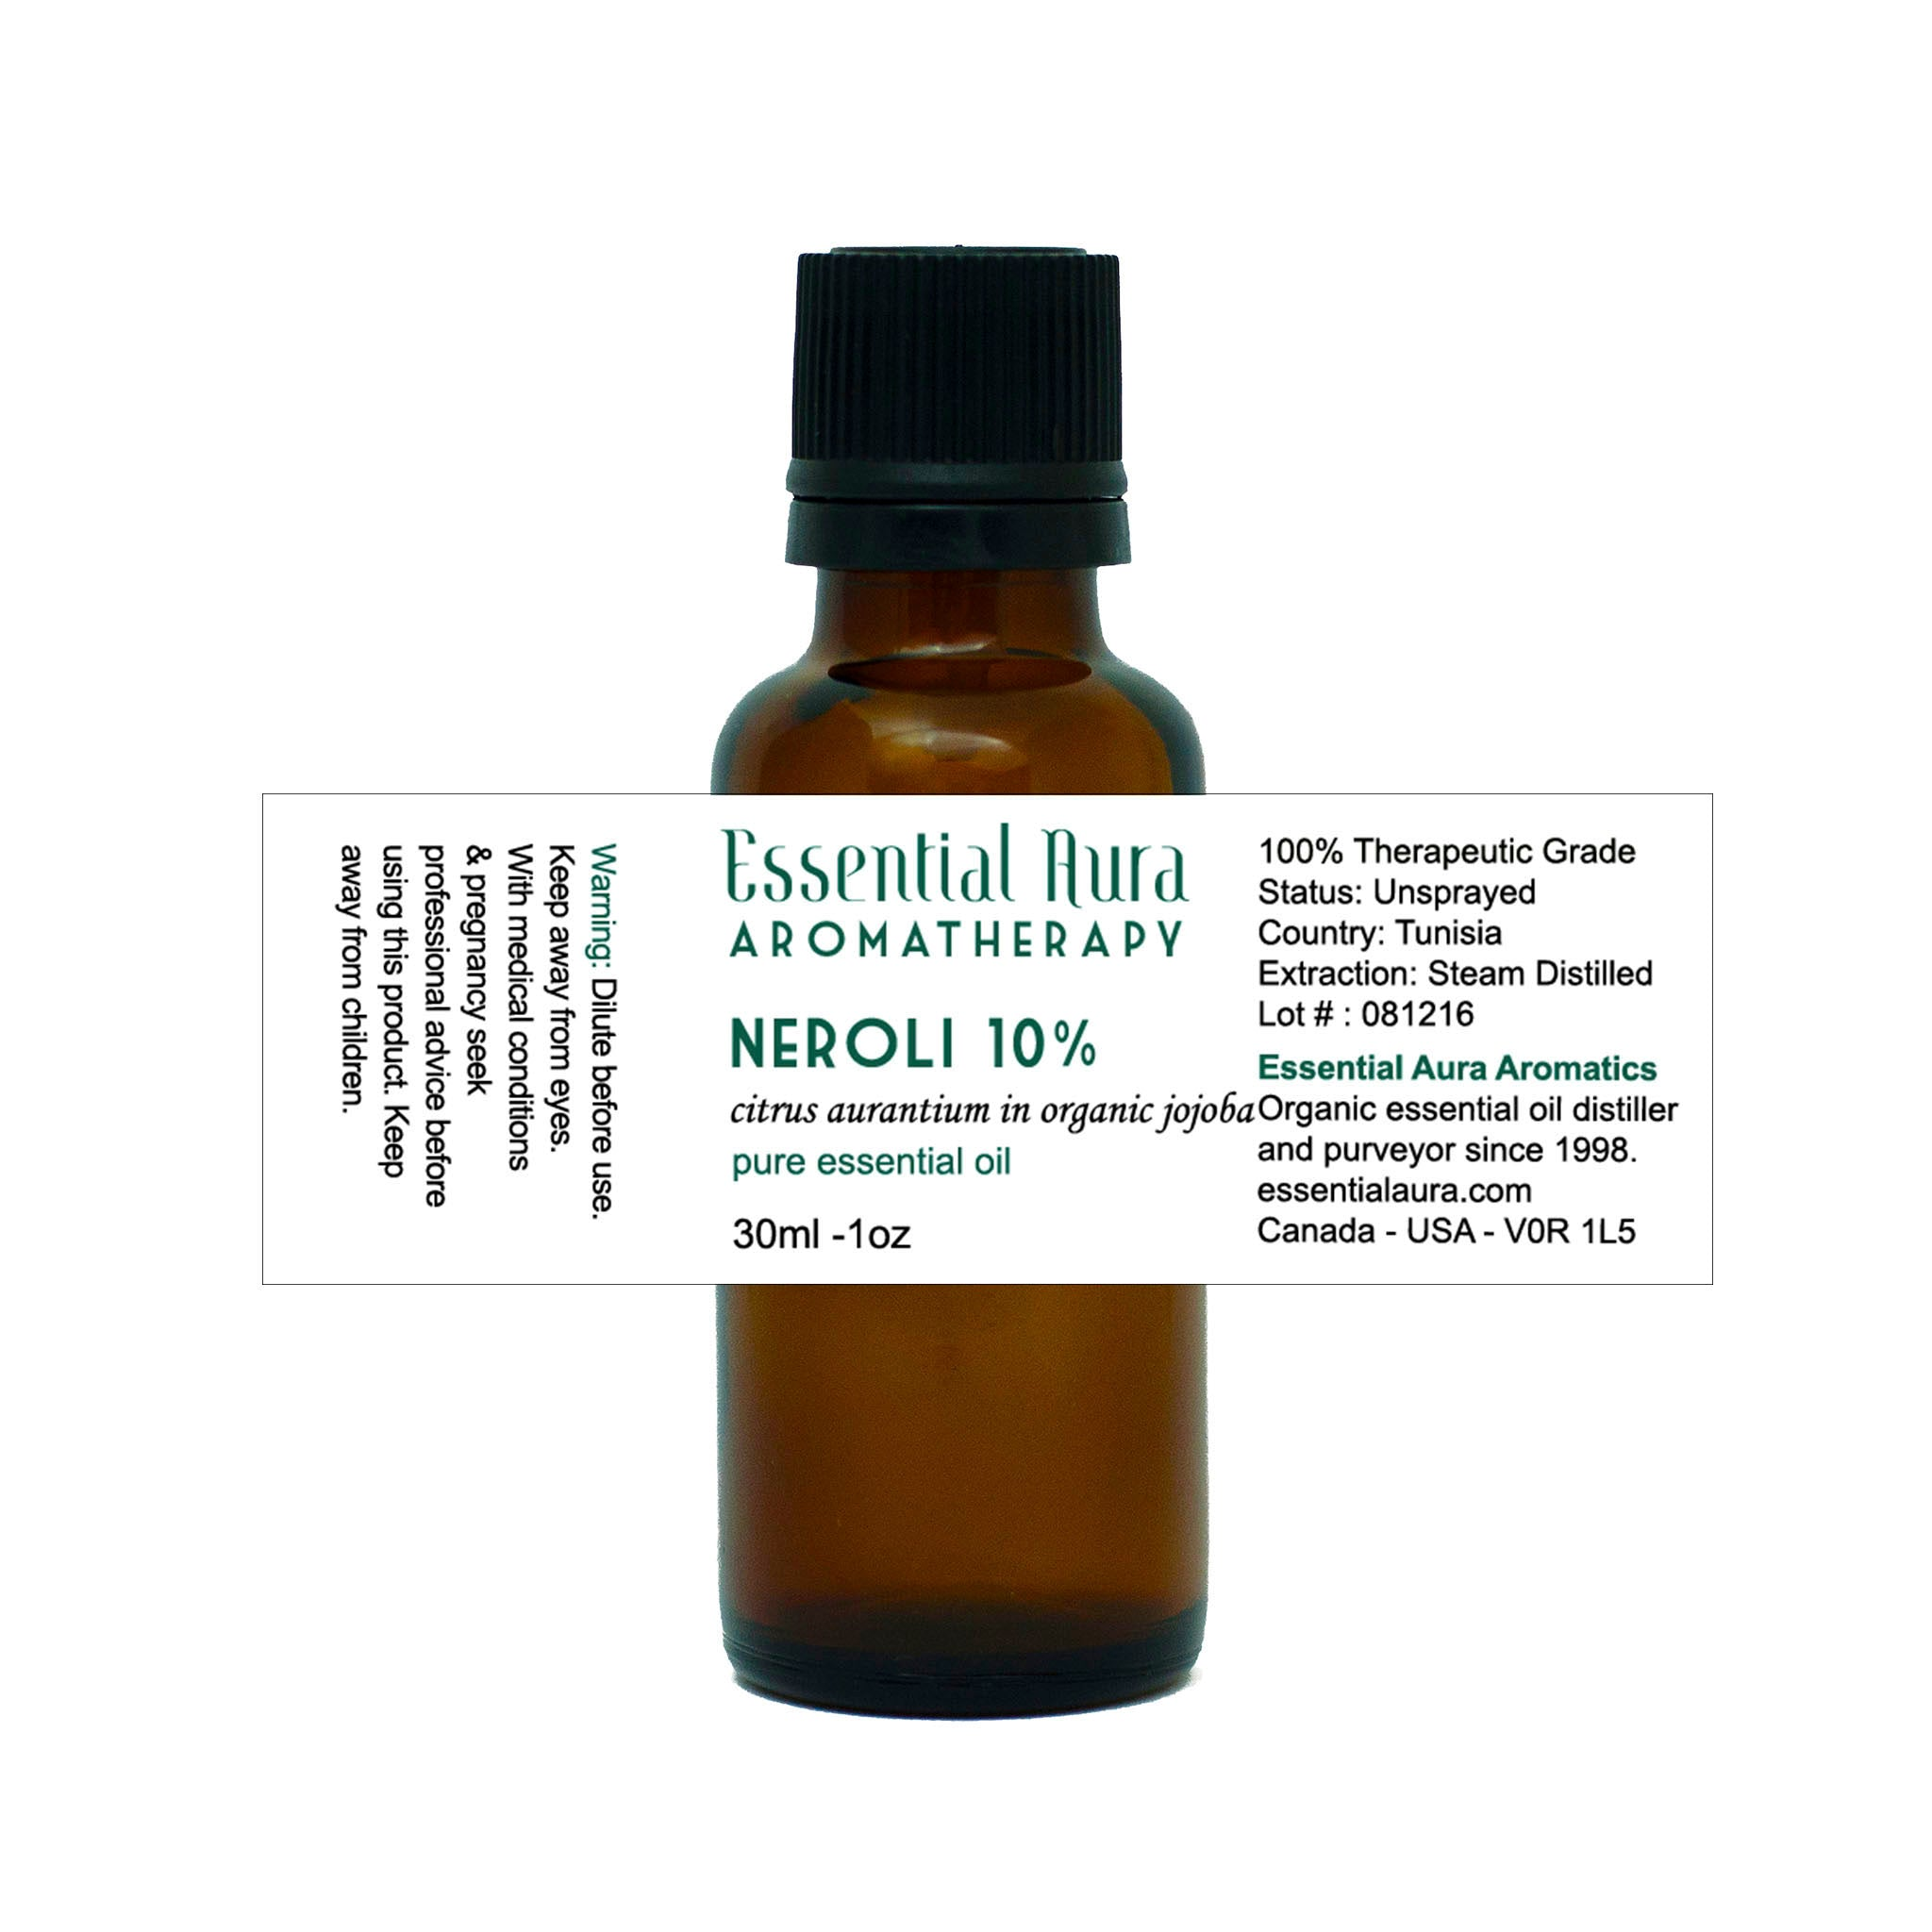 bottle of Neroli 10% Essential Oil